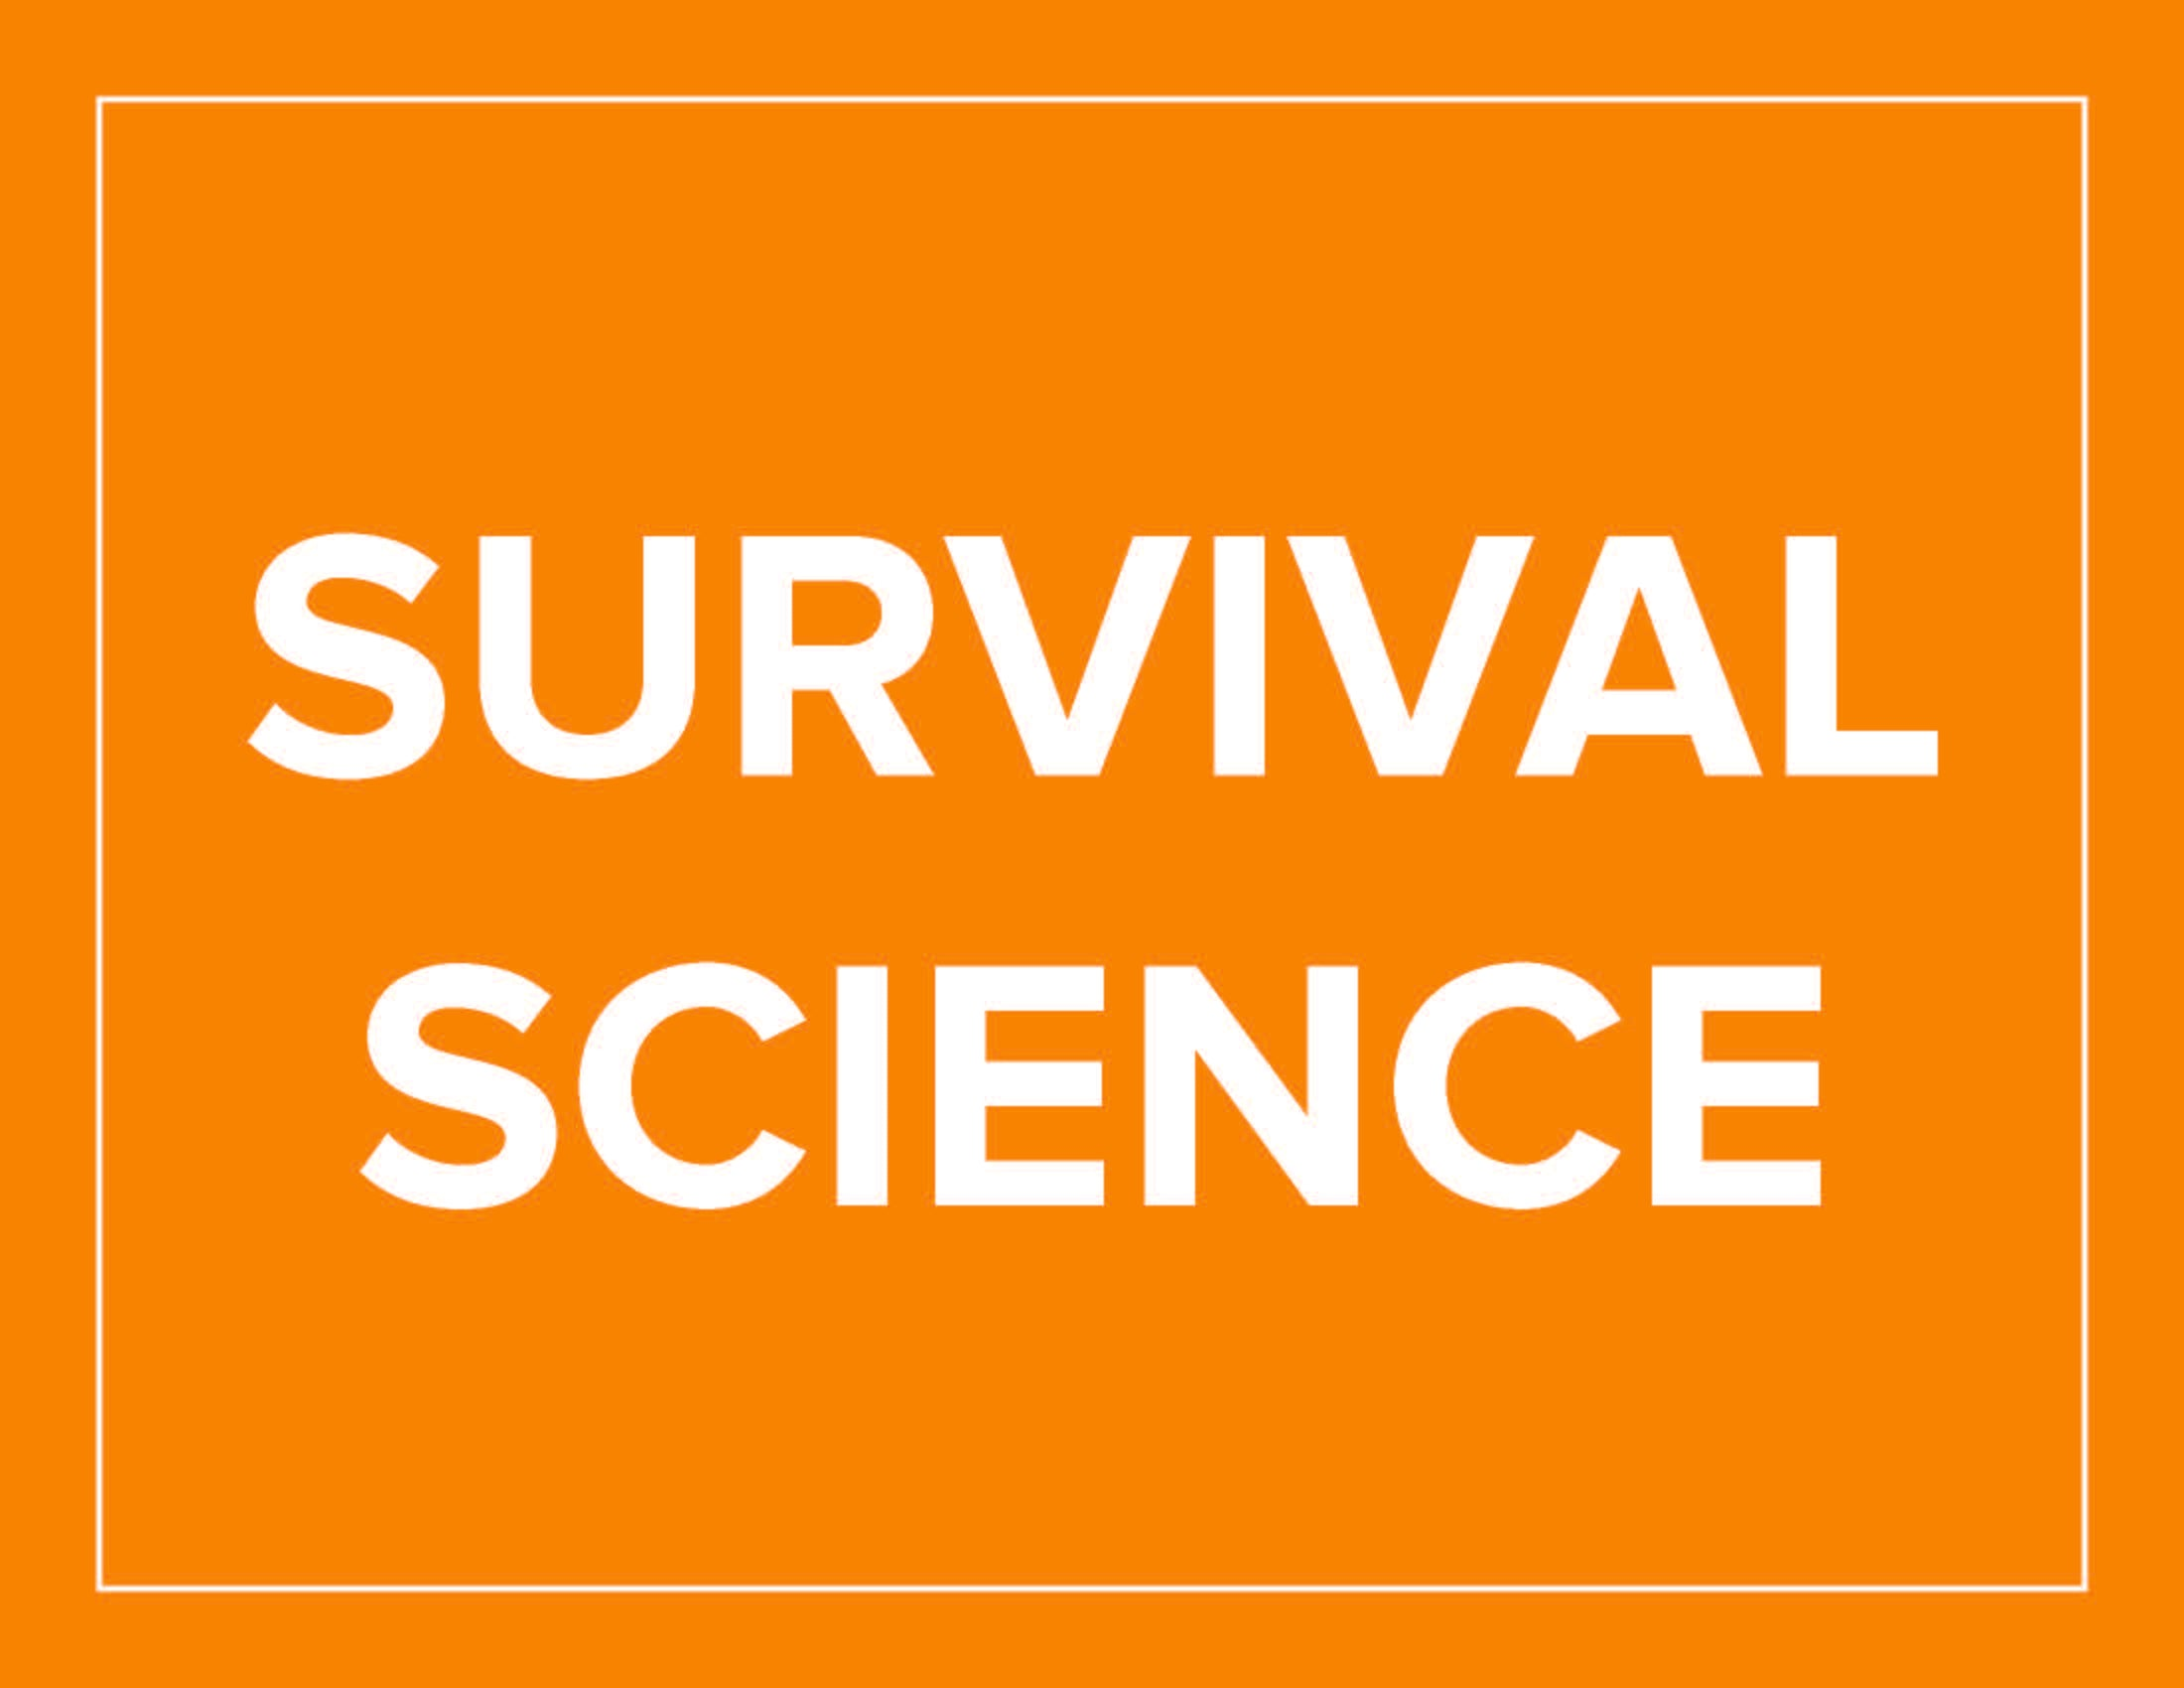 Survival Science August 24-28